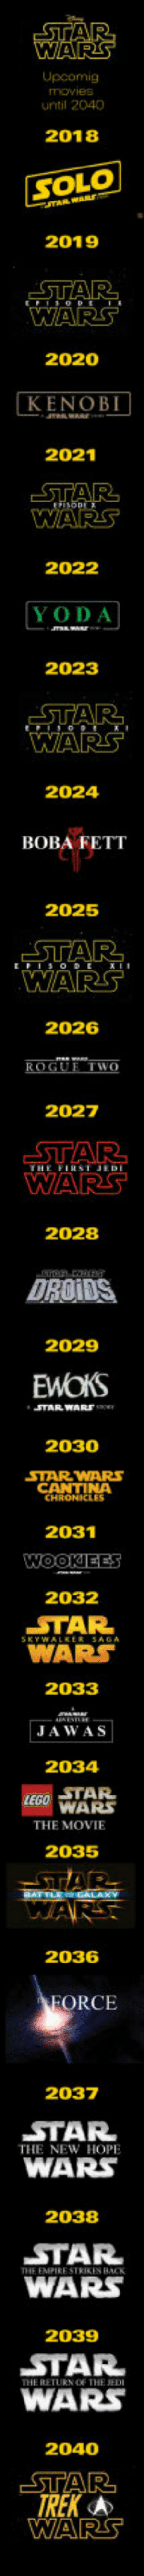 I have a bad feeling about this: WARS  movie3  until 2040  2018  SOLO  2019  2020  KENOB  2021  2022  YODA  2023  2024  BOBA FETT  2025  2026  We  2027  2028  DROIDS  2029  TARWARS  2030  STAR WARS  CANTINA  2031  2032  WAR  2033  JAWAS  2034  STAR  WARS  THE MOVIE  2035  2036  ORCE  2037  STAR  WARS  THE NEW HOPE  2038  STAR  WARS  2039  STAR  WARS  2040  WARS I have a bad feeling about this